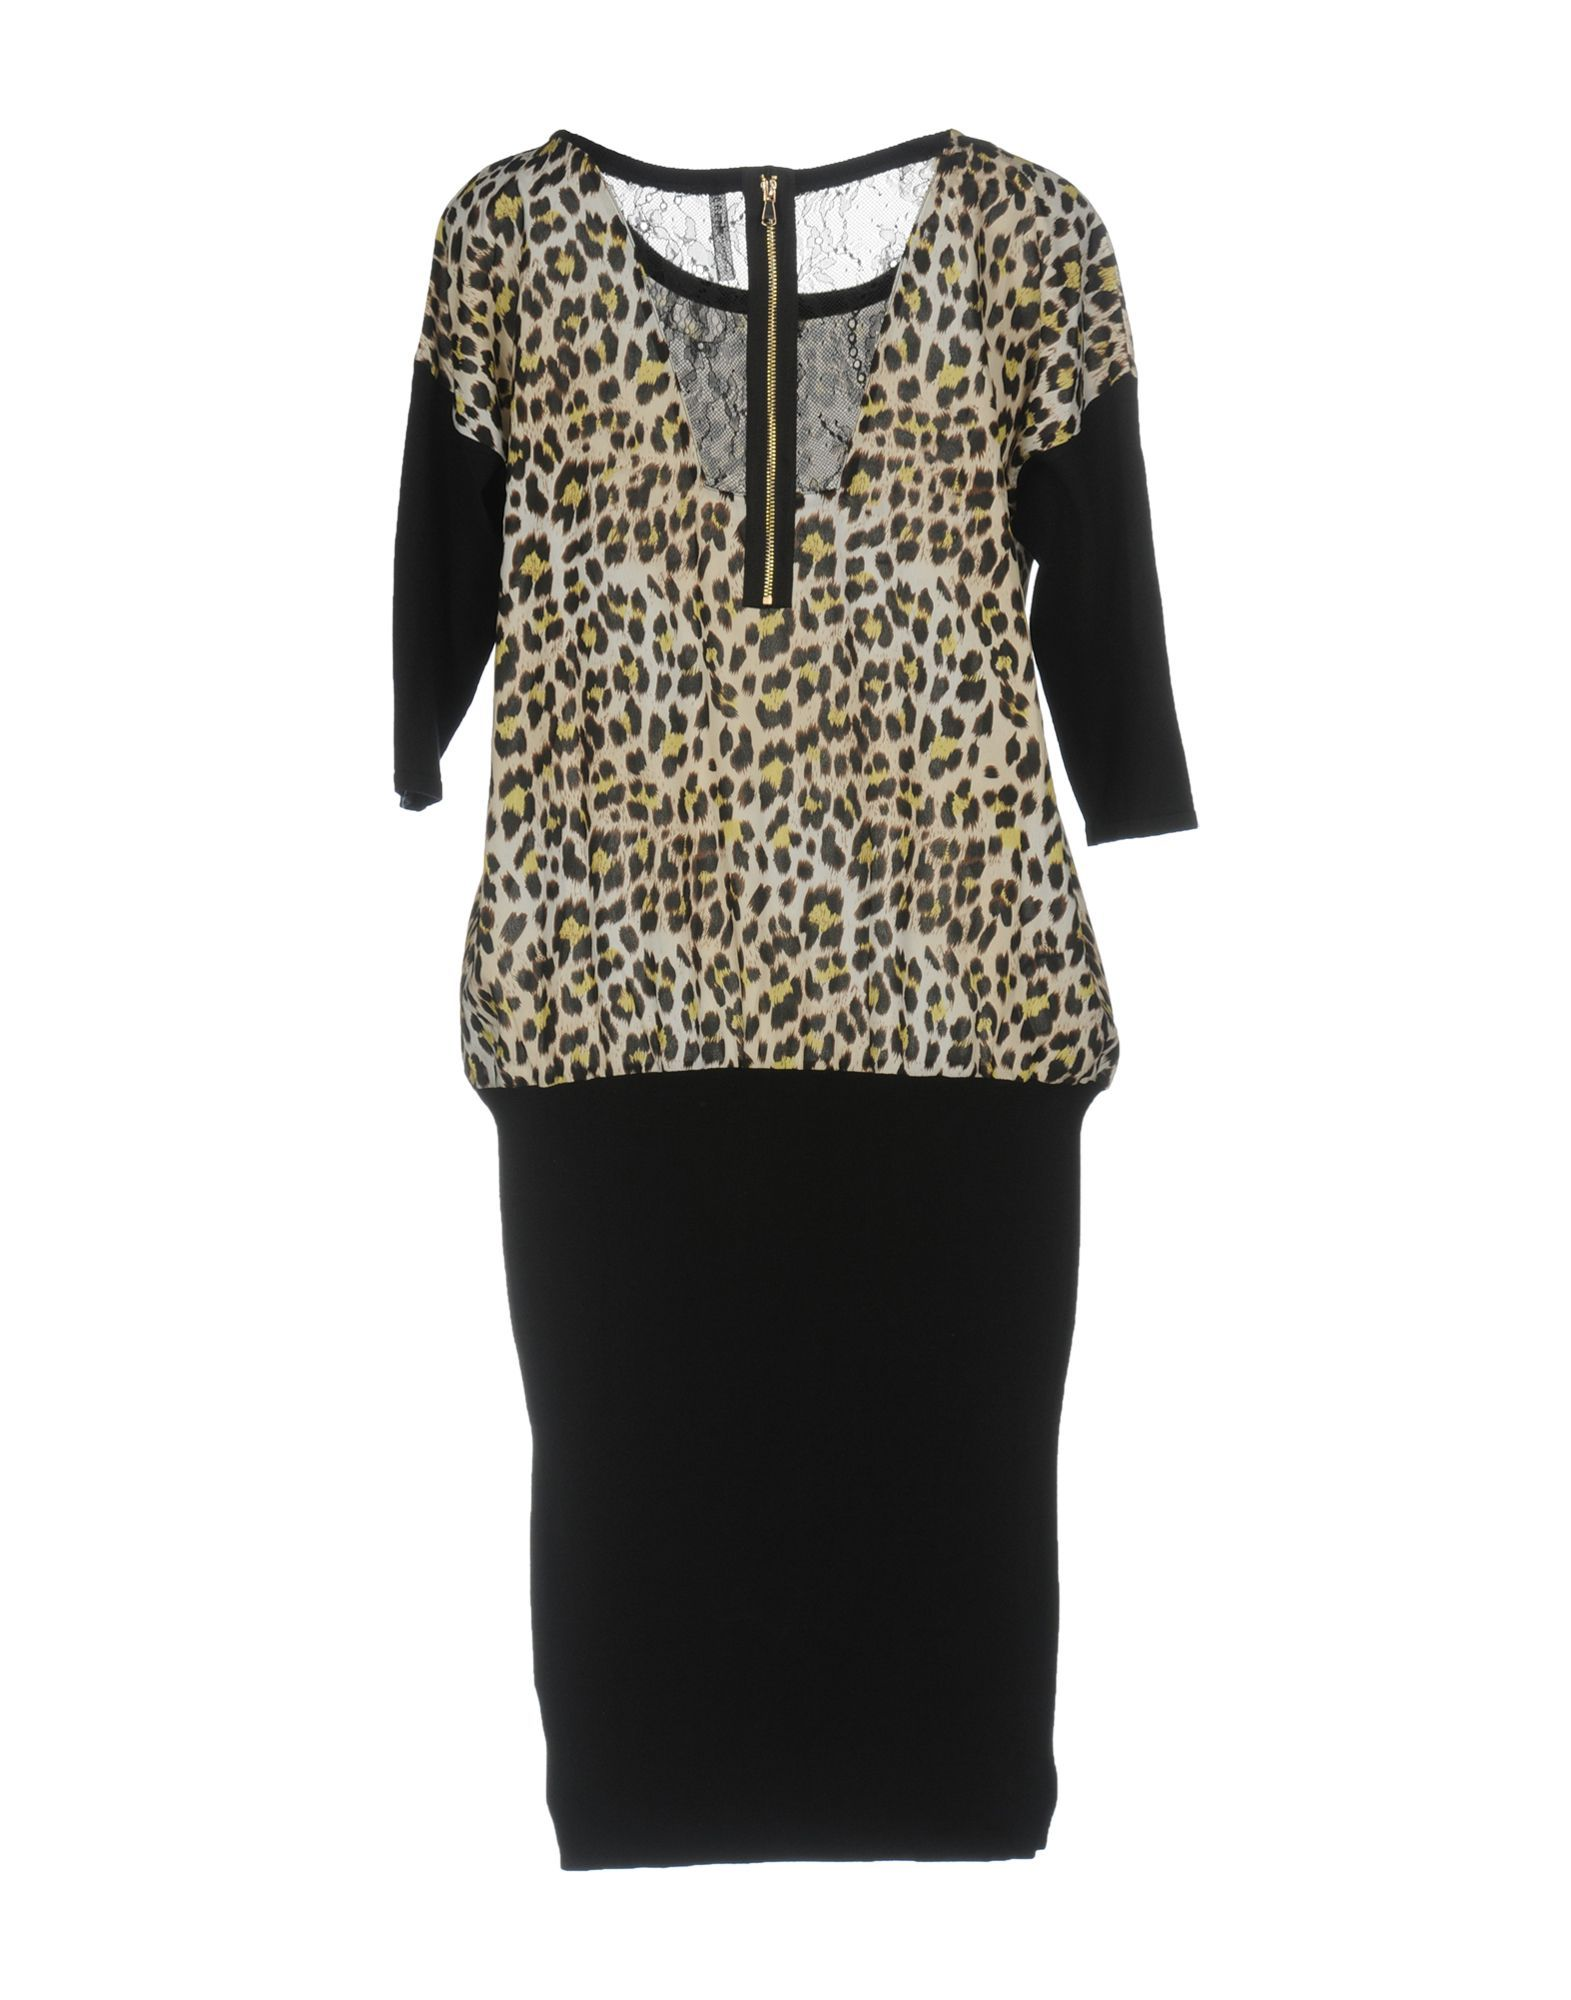 Guess Black Knit Leopard Print Dress